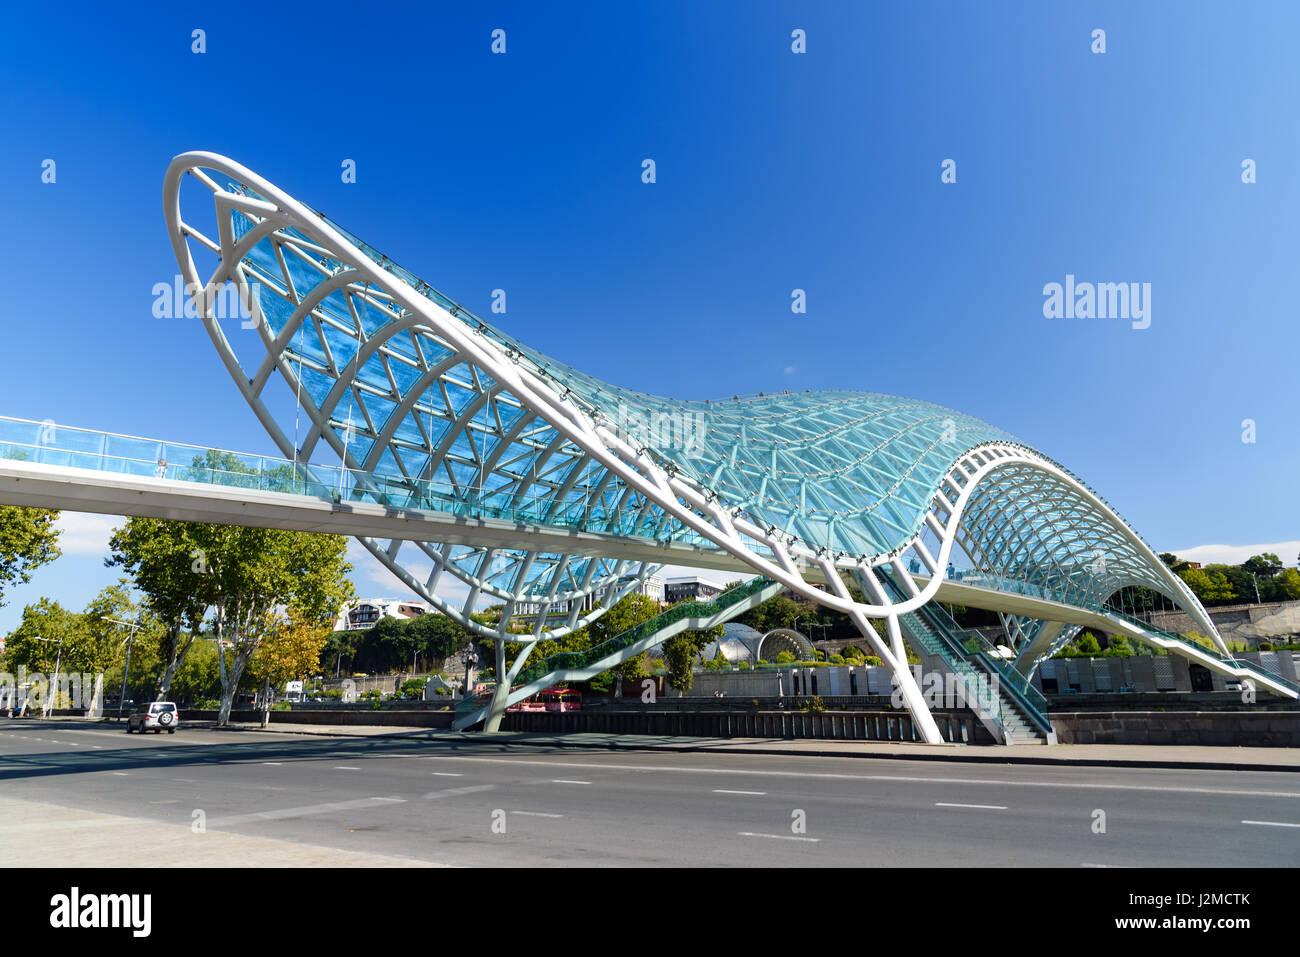 Tbilisi, Georgia - September 27, 2016: Bridge of Peace over the Kura River Stock Photo